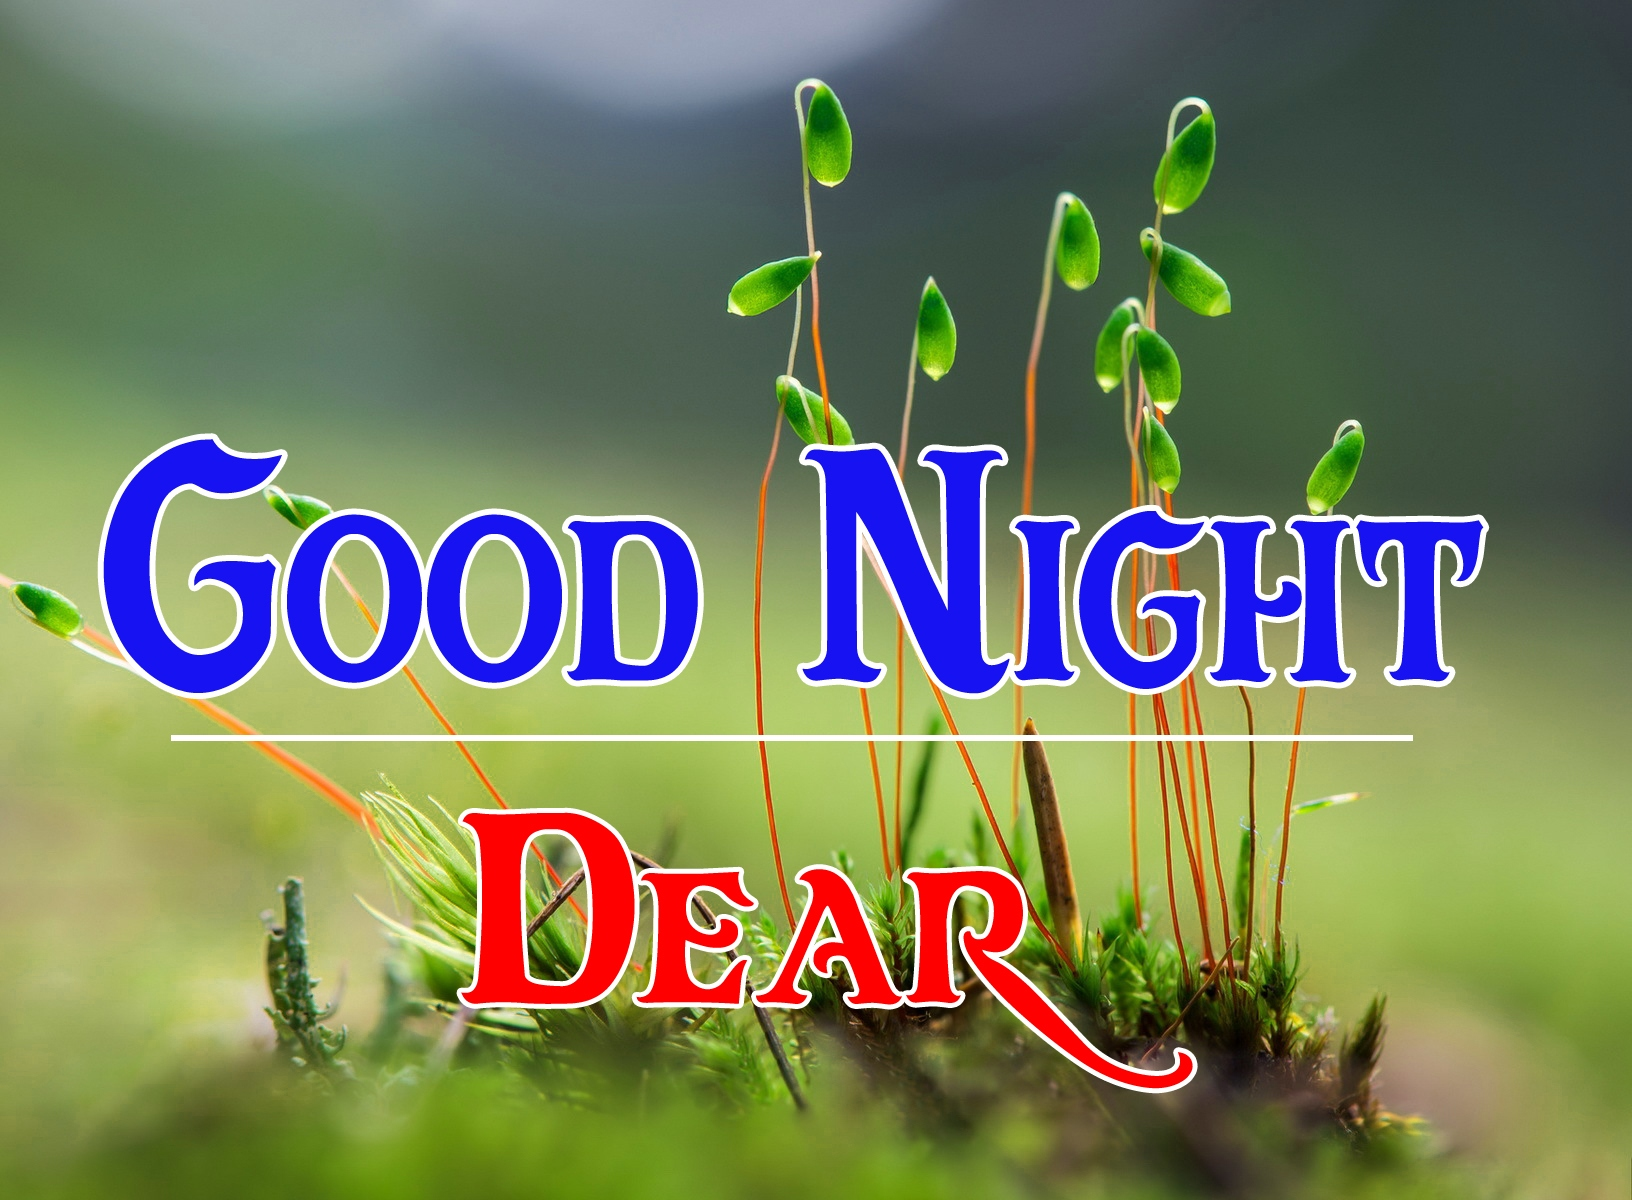 Good night wallpaper hd 45 1